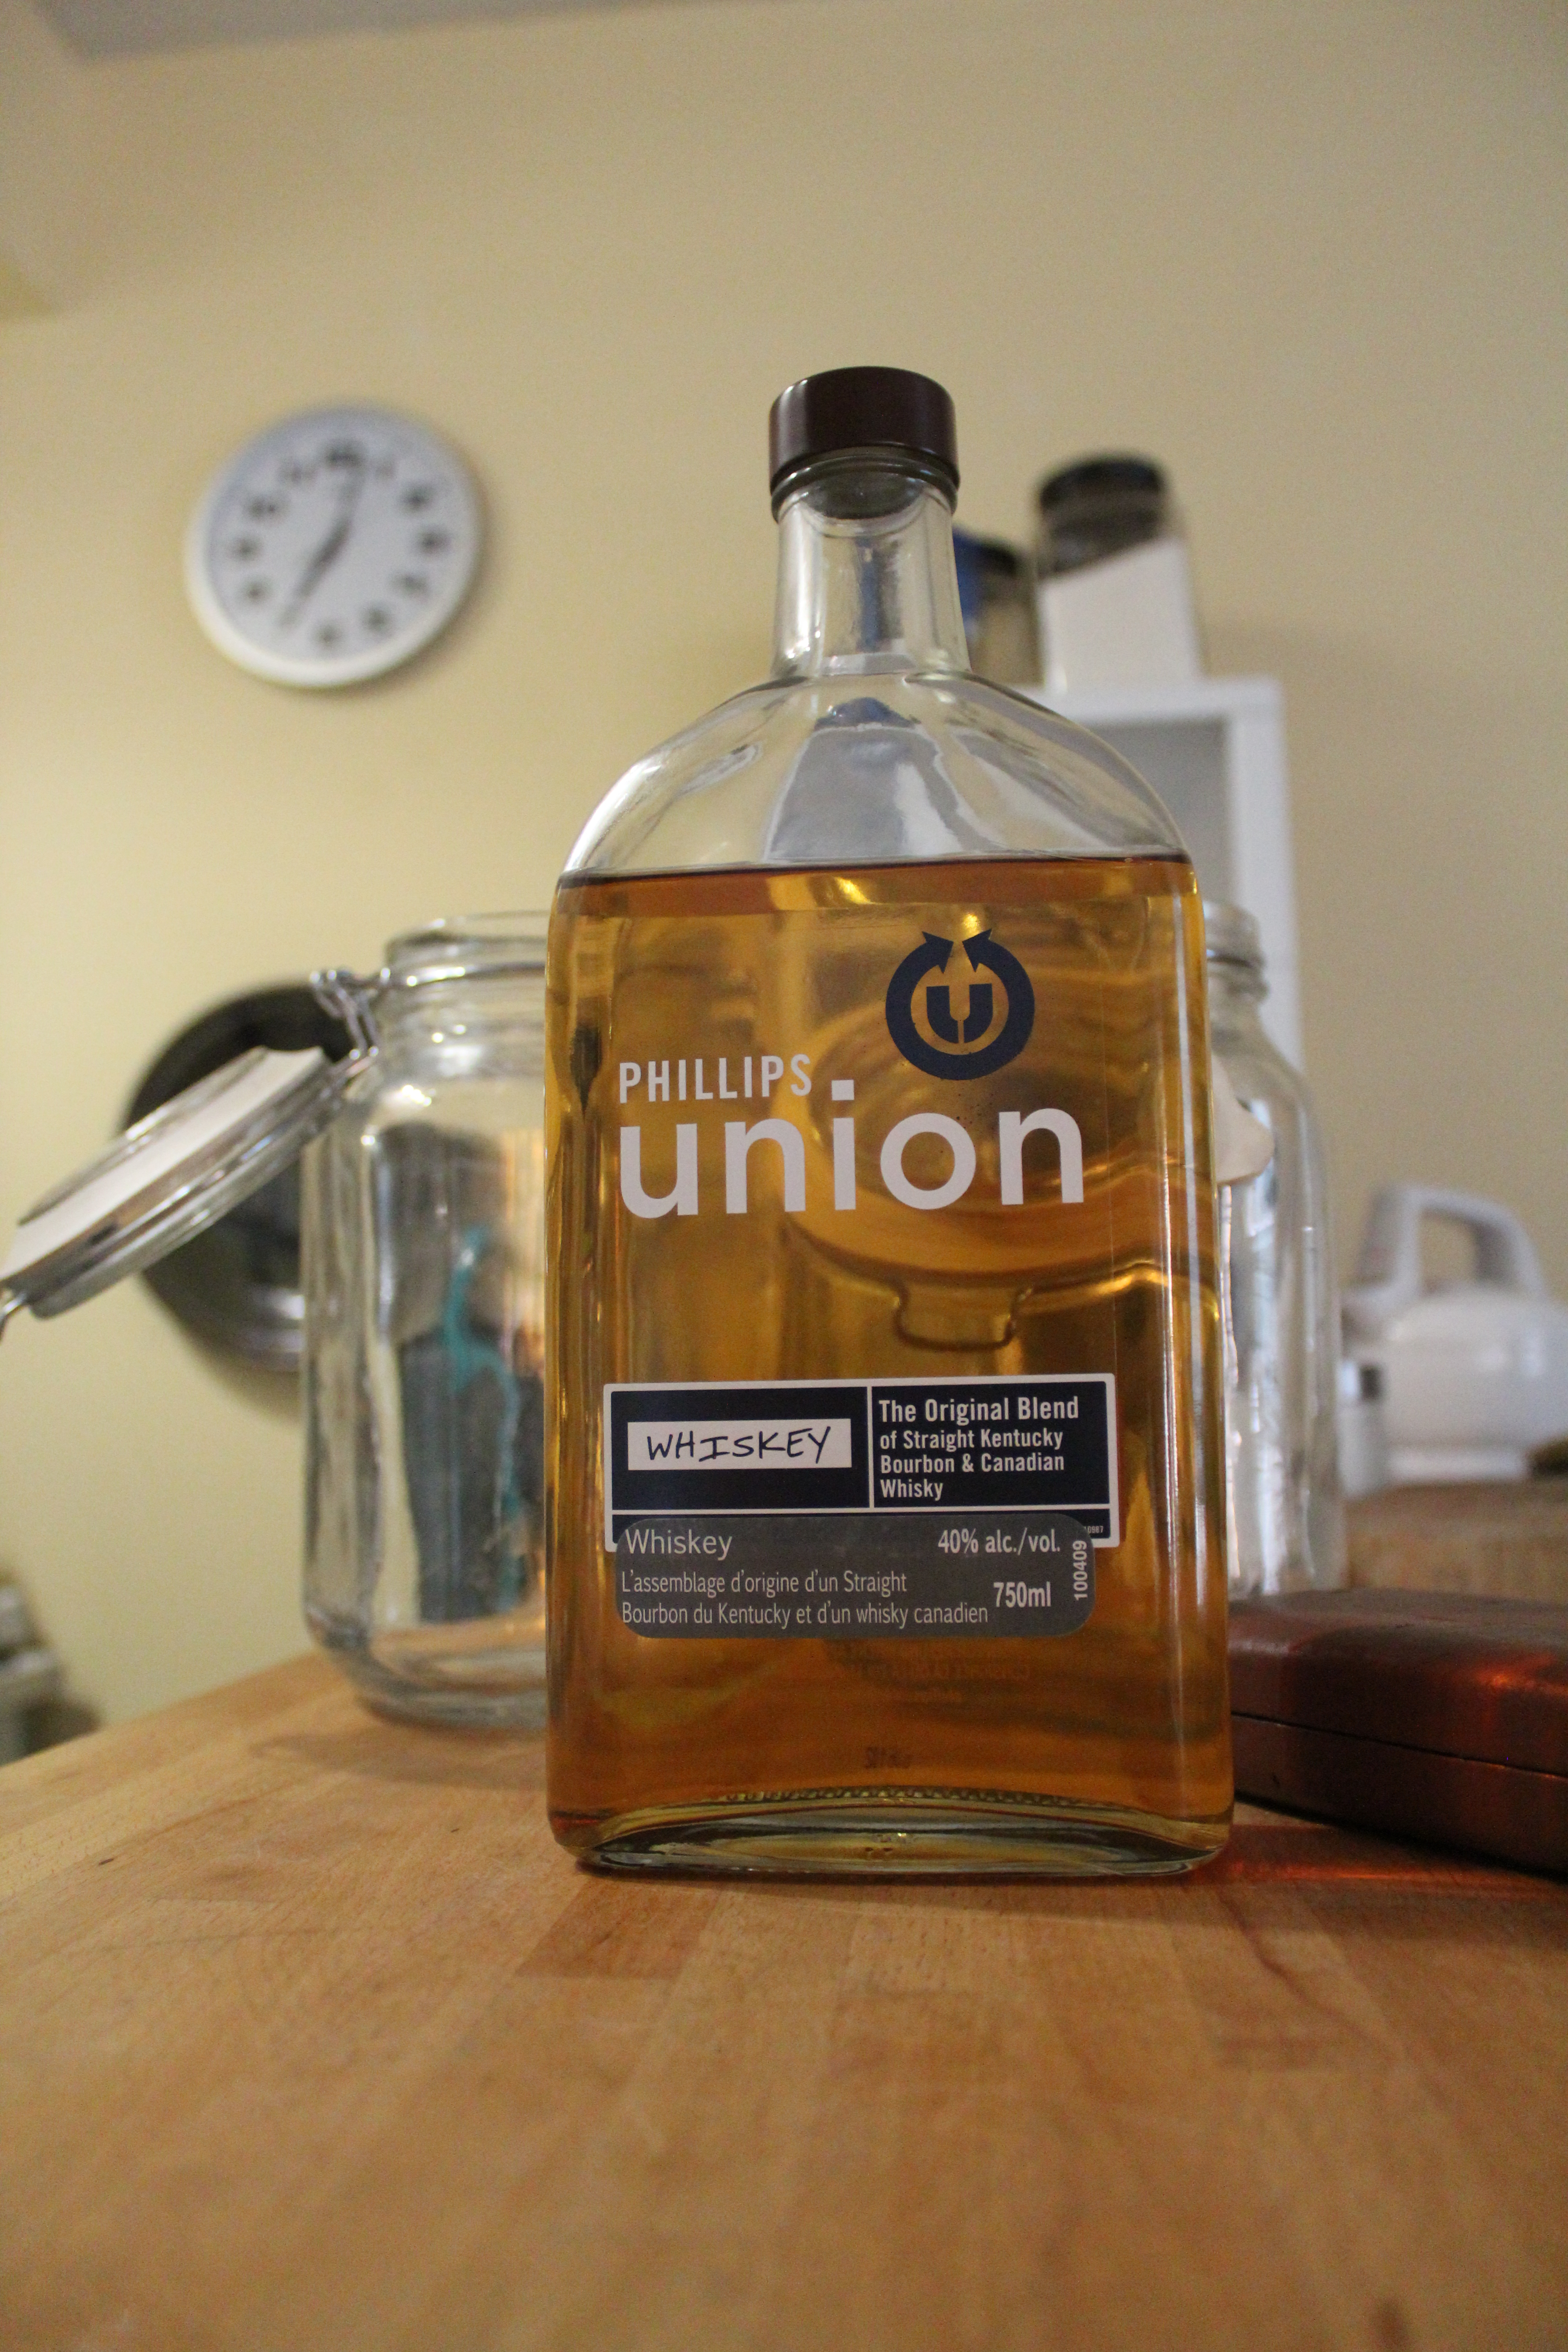 Phillips Union Whiskey Kentucky Straight Bourbon/Canadian Whisky with Dan